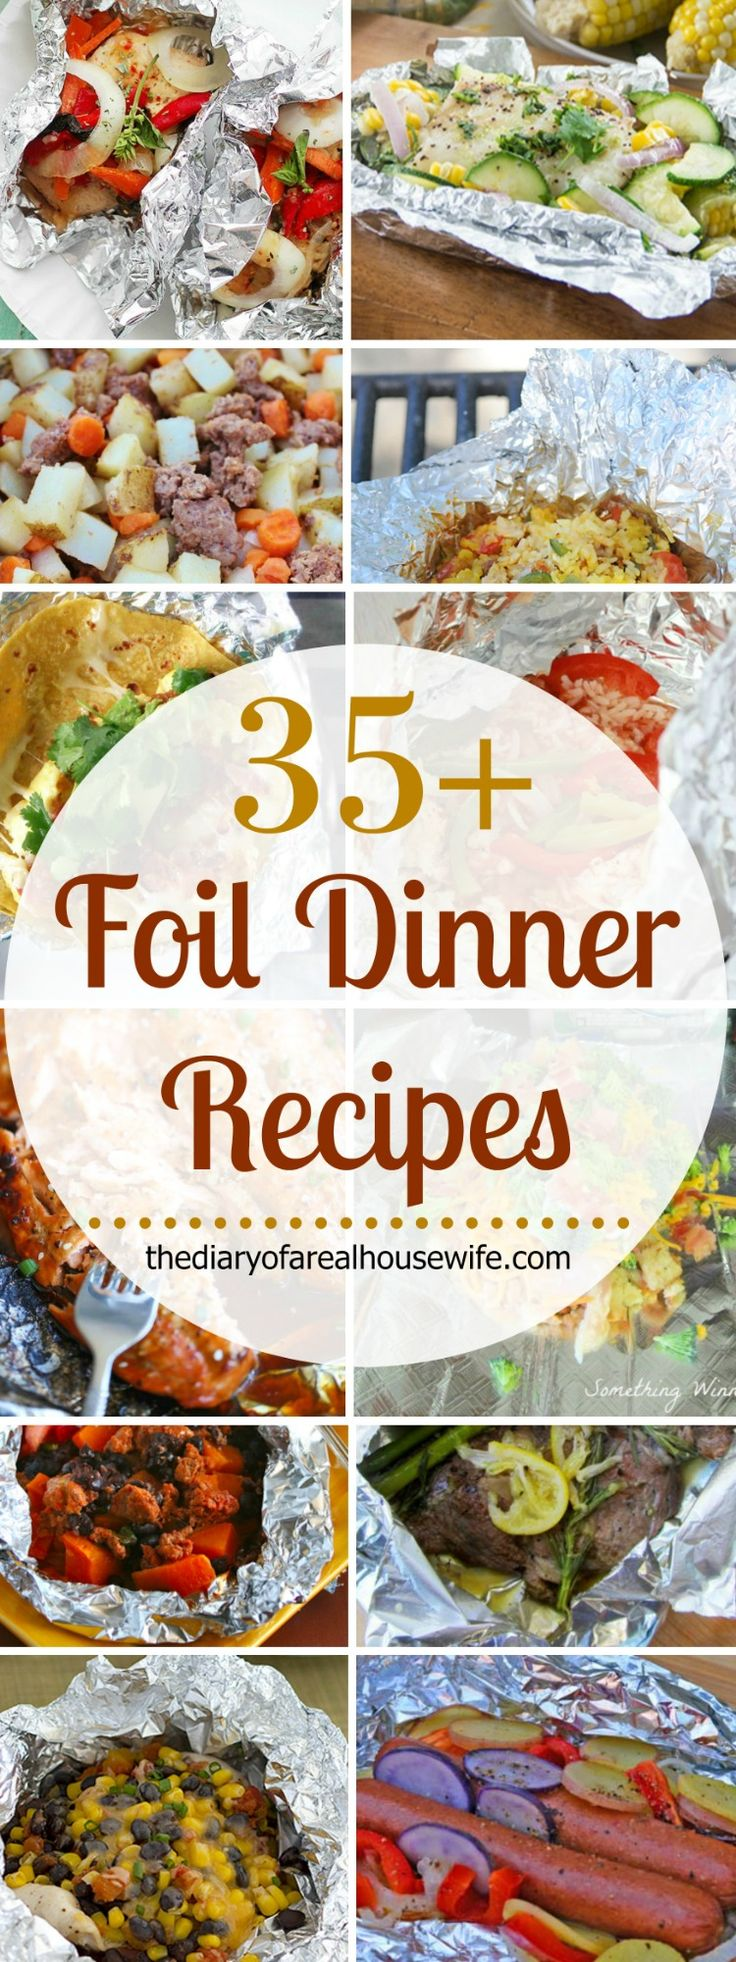 1128 best camping food images on pinterest camping tips camping awesome foil dinner recipe ideas forumfinder Gallery